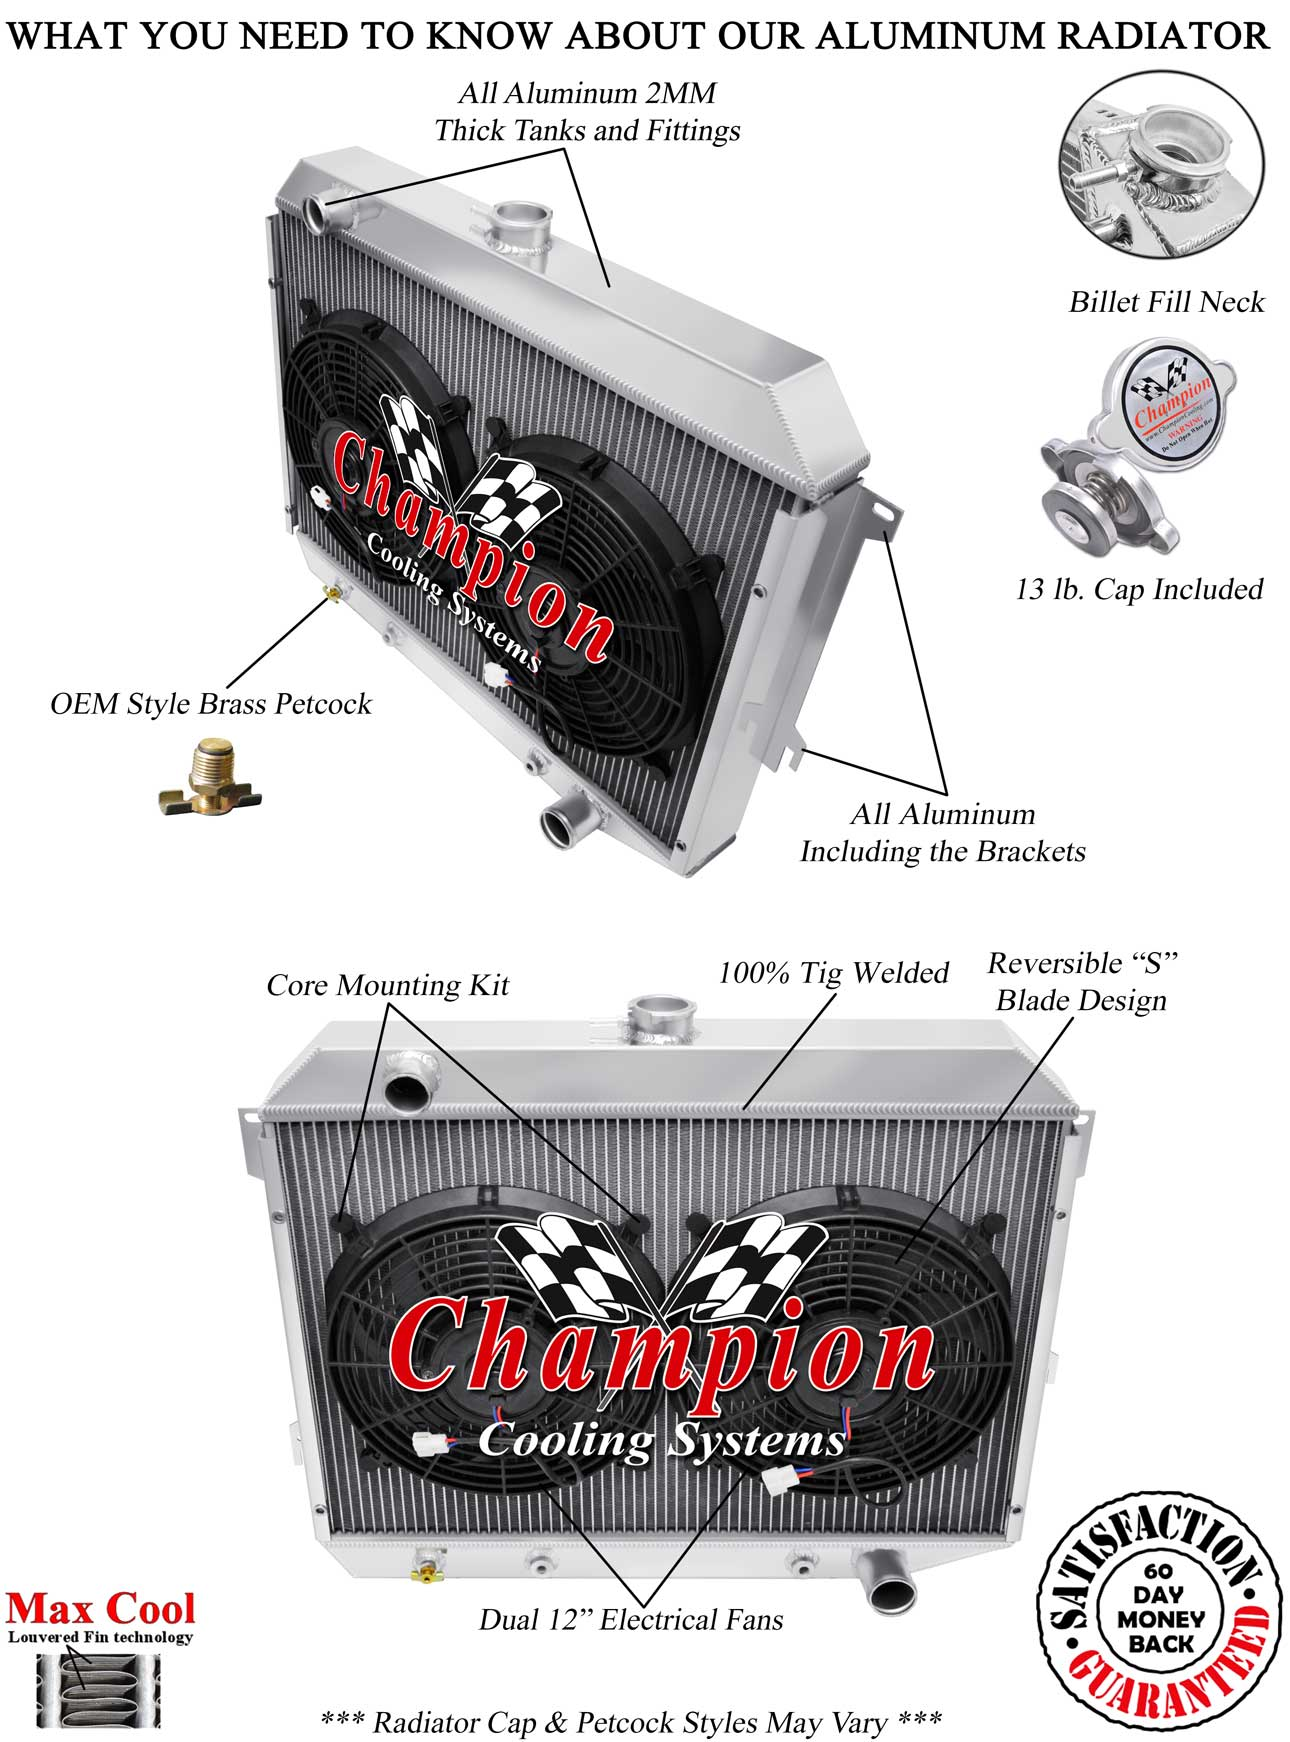 https://www.championcooling.com/photos/Photos%20White/With%20Fans/Combos/374/3742x12/374_fan_white_Diagram_Champion.jpg